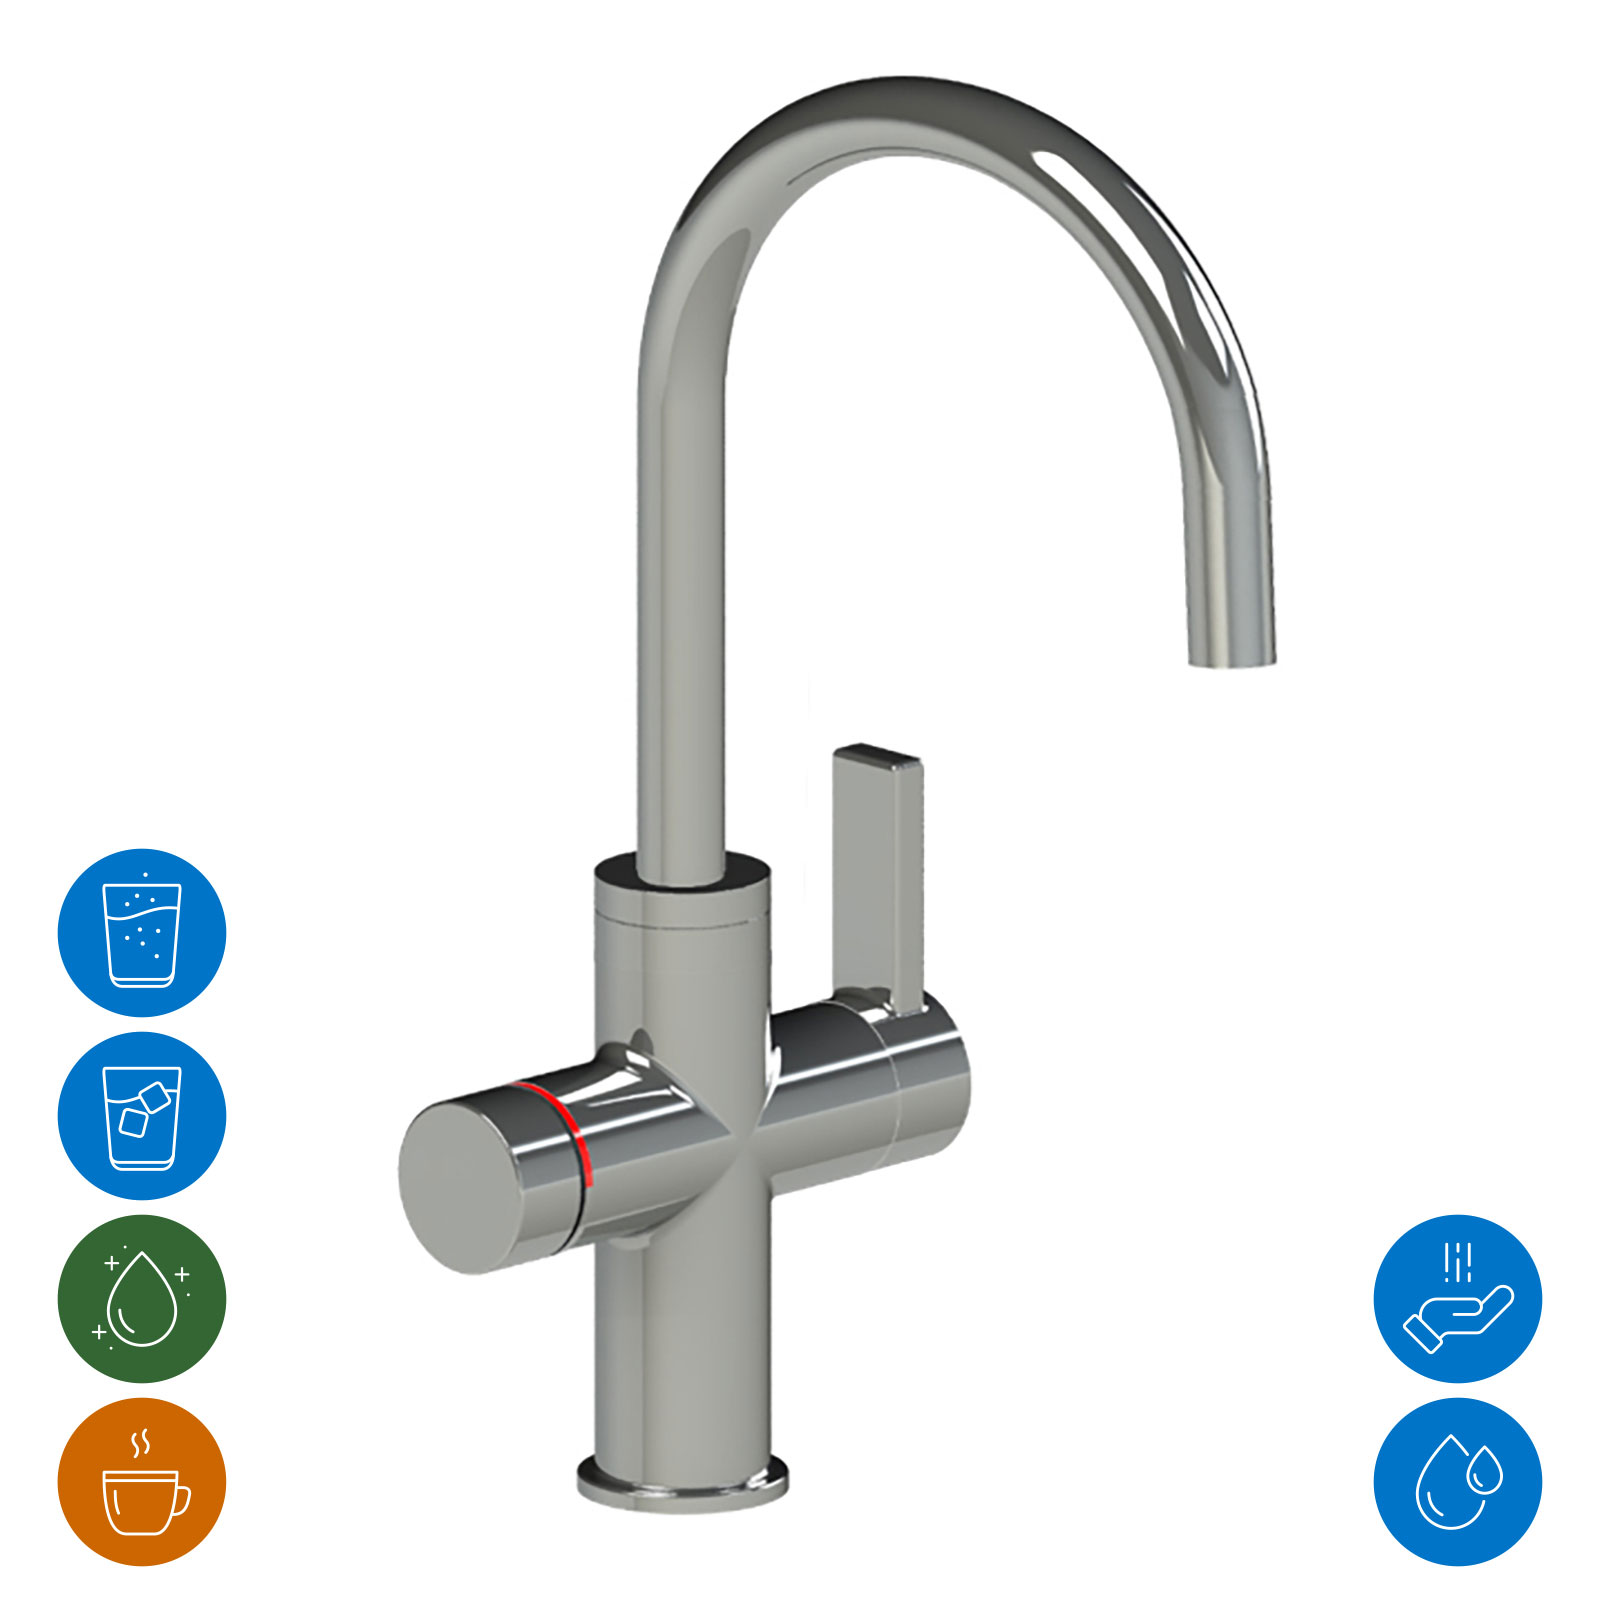 Multifunctional faucet with electronic push/turn knob